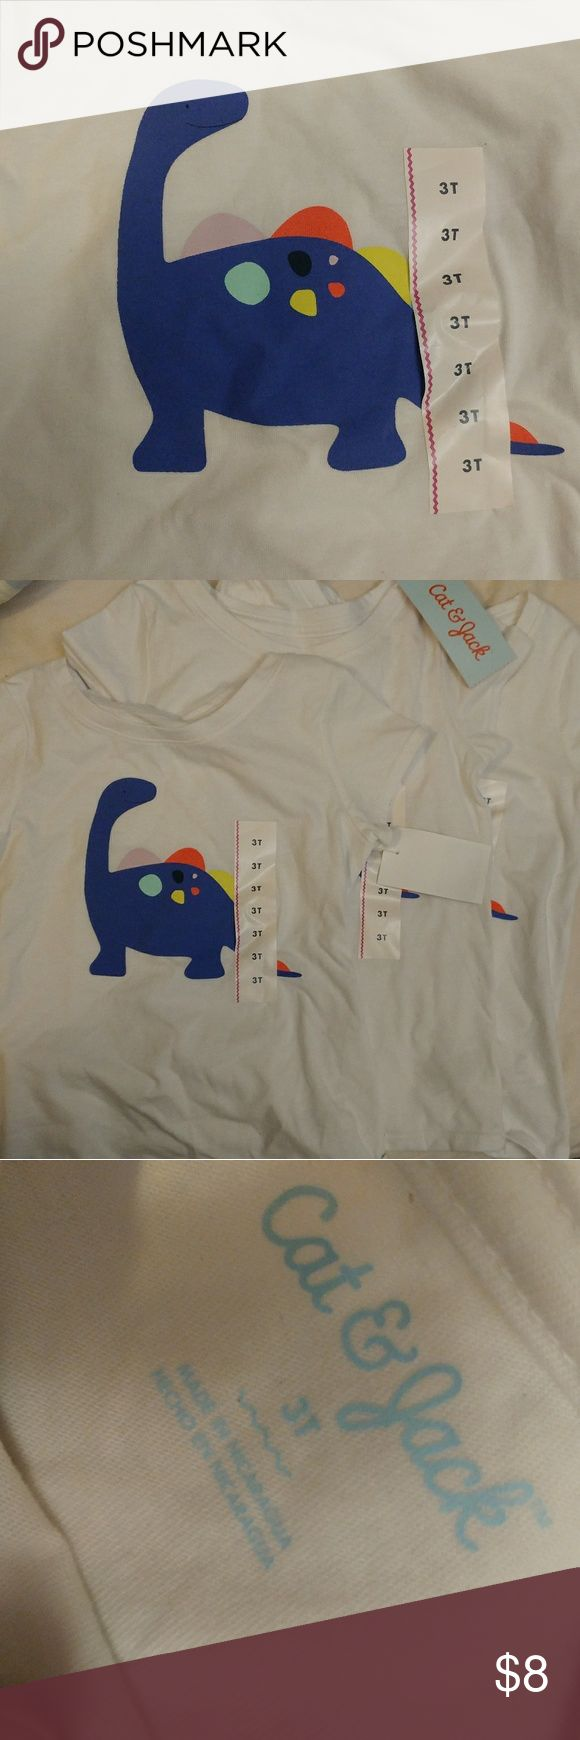 Three 3t dinosaur t-shirts, bnwt Really cute dinosaur t-shirts from Cat and Jack. There are three identical t-shirts, perfect for cousins, siblings, or pals. They're neutral as well, and would be great for boys or girls. Preference would be to sell as a lot of all three. Please let me know if you have any questions or need more pictures! Thanks! cat and jack Shirts & Tops Tees - Short Sleeve